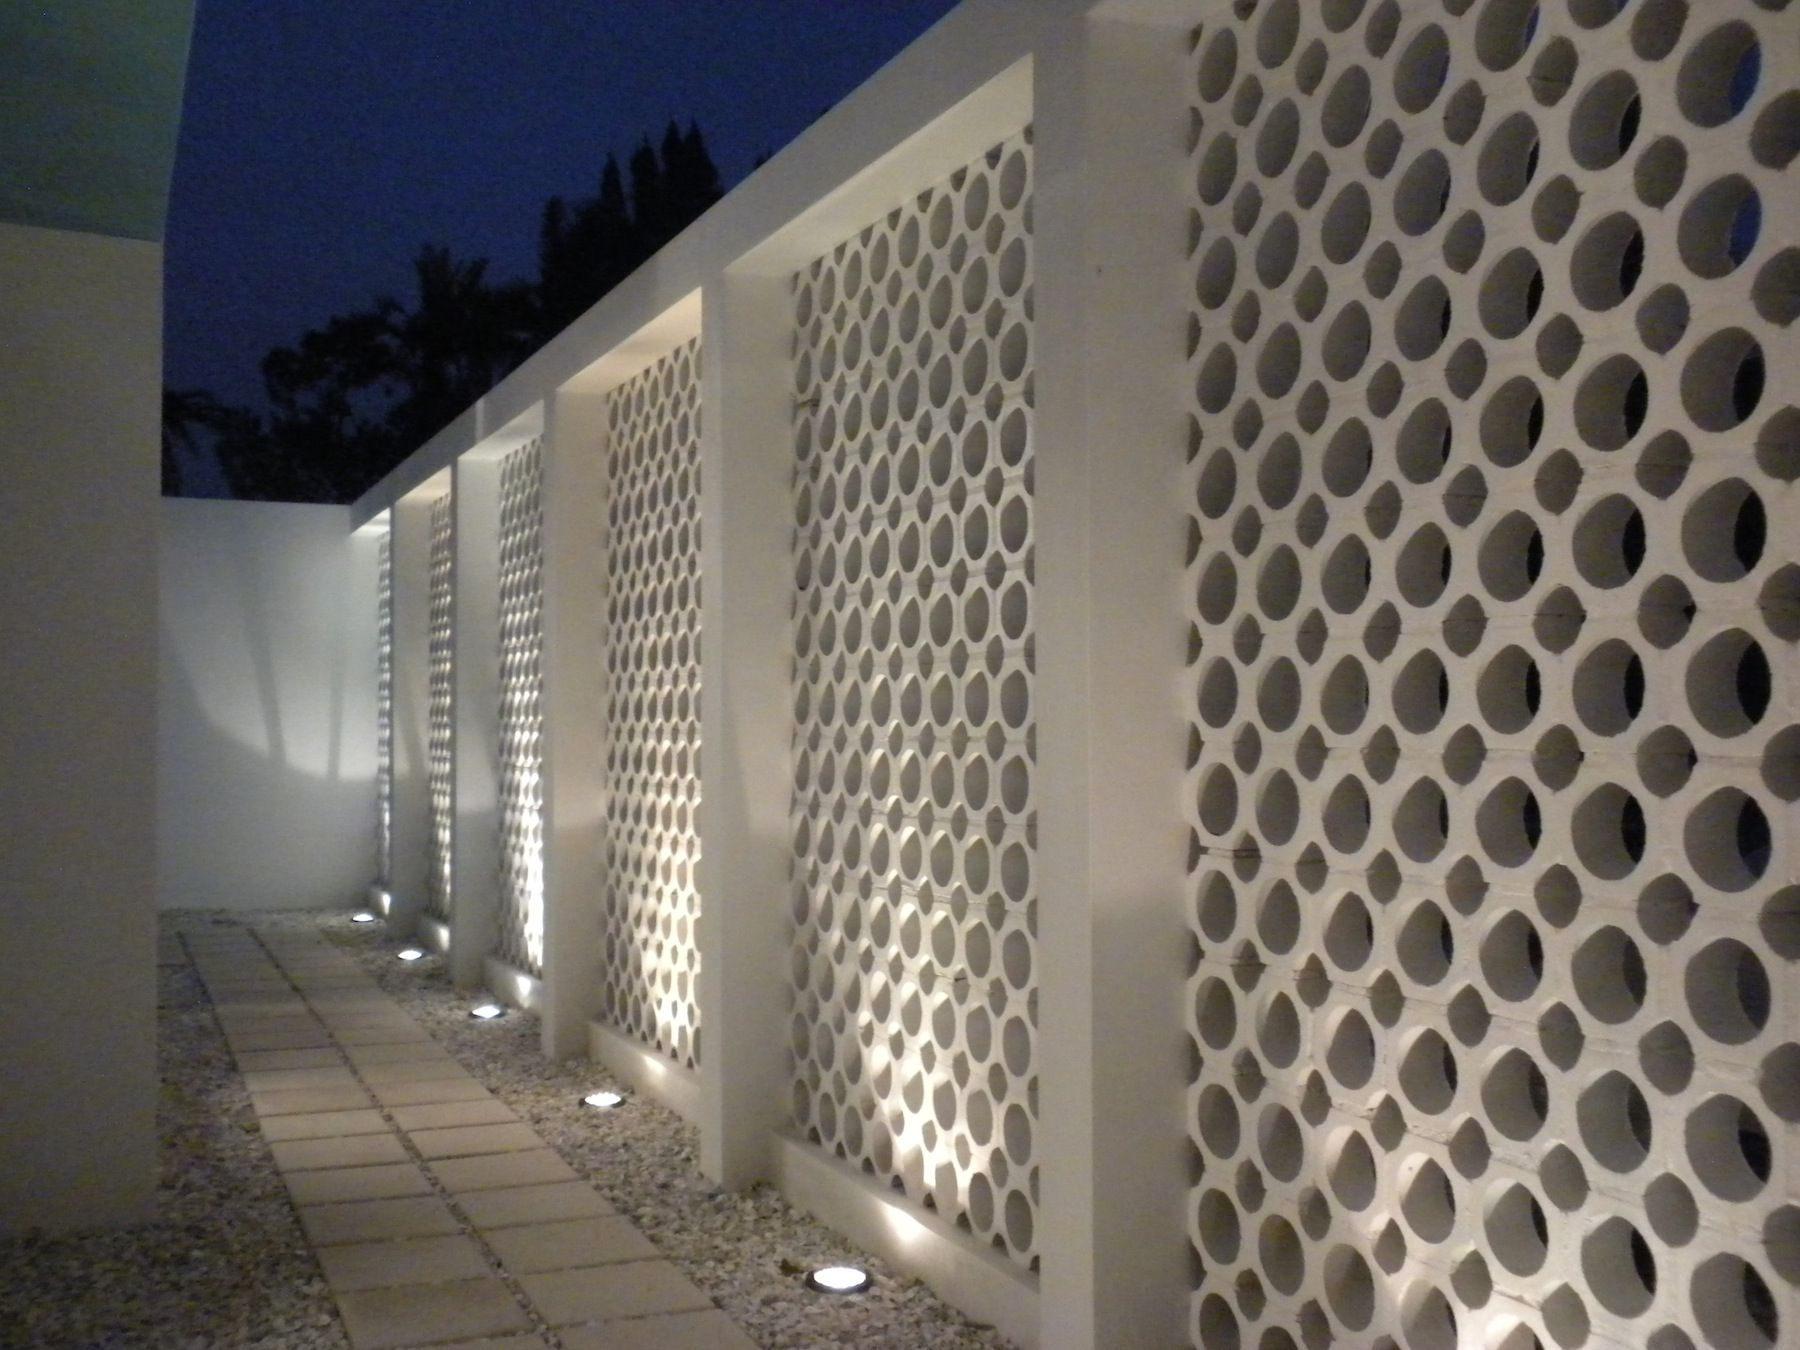 Pin By Dale Swanson On Block Wall Fence Concrete Block Walls Breeze Block Wall Decorative Concrete Blocks